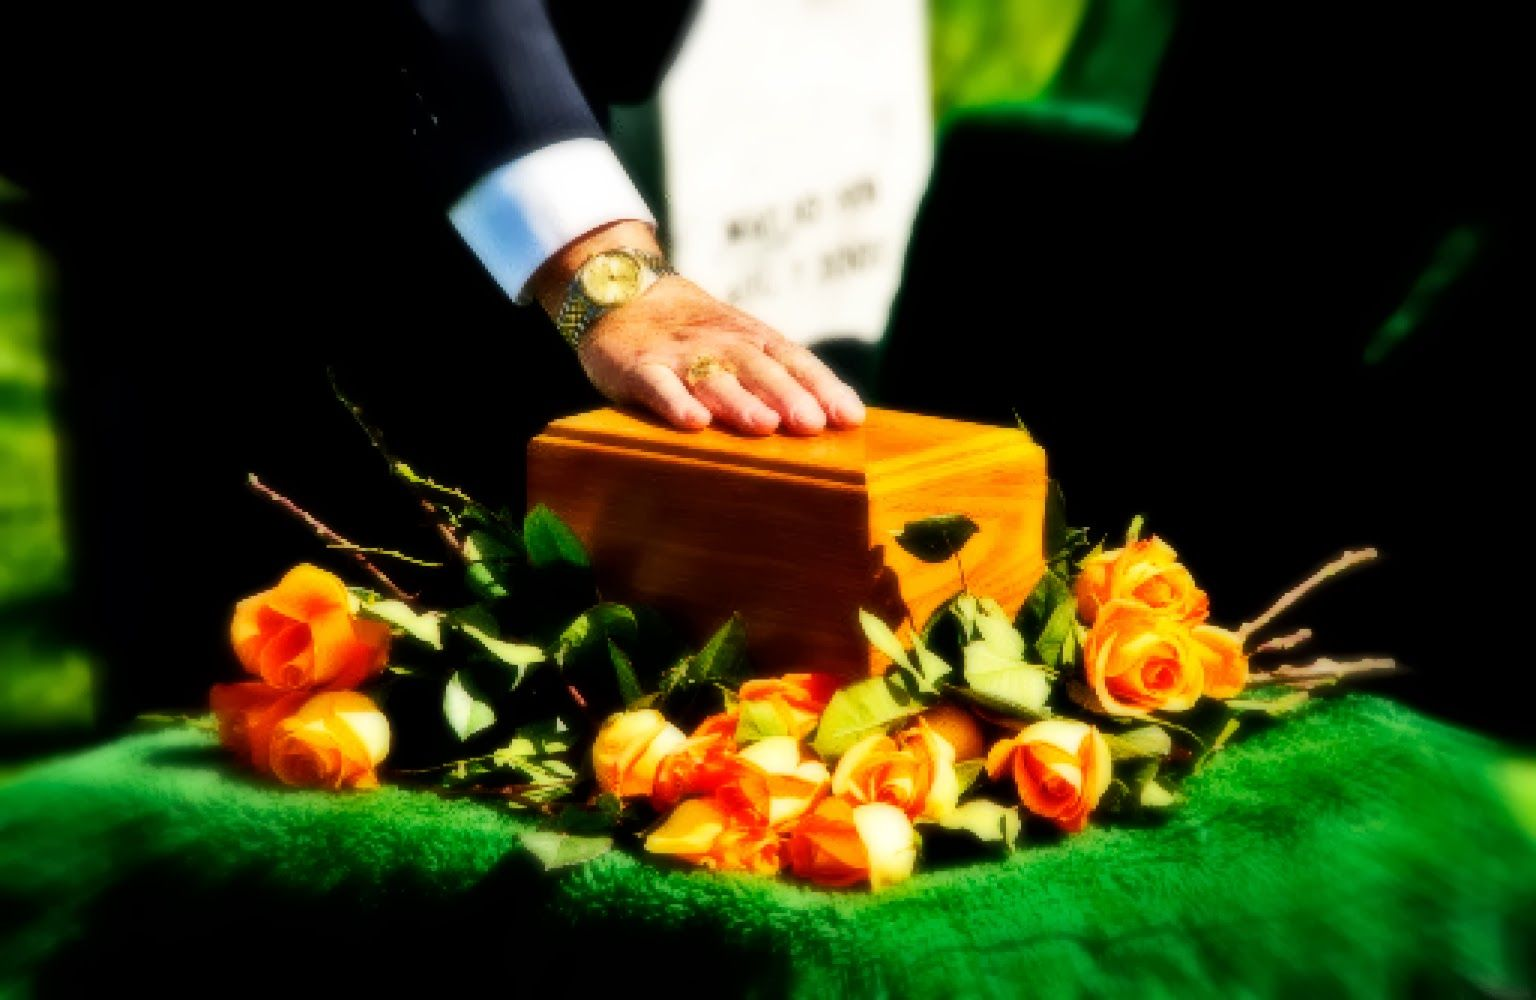 A consumers guide to planning your cremation service